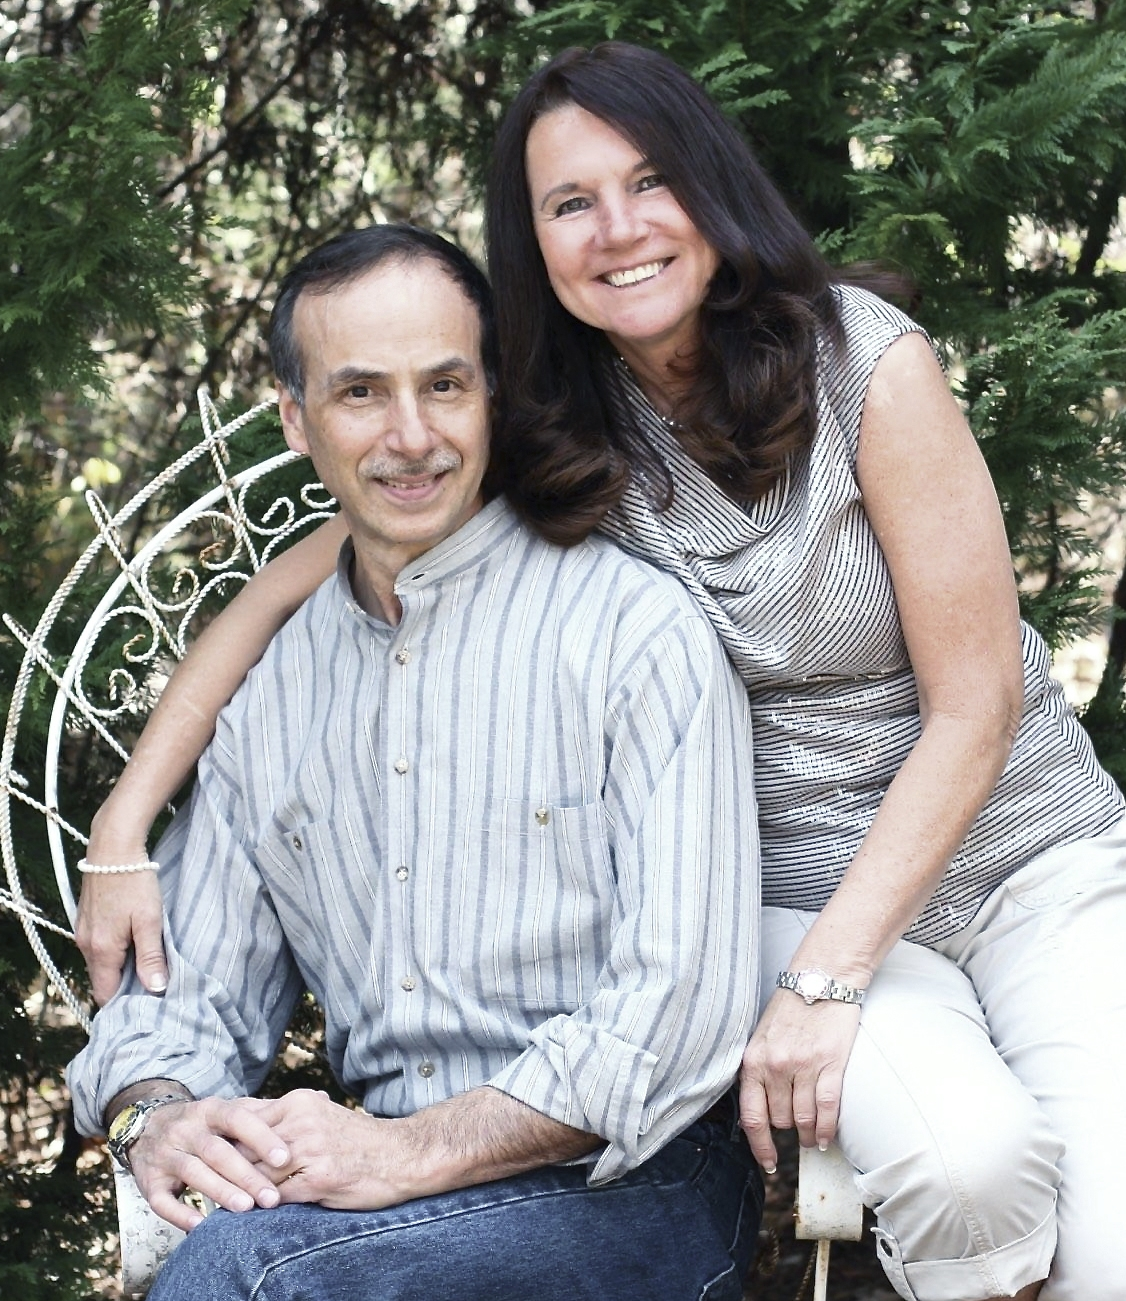 Lance & Anne Lewin - photo by Nadine Lewin Wall 2015